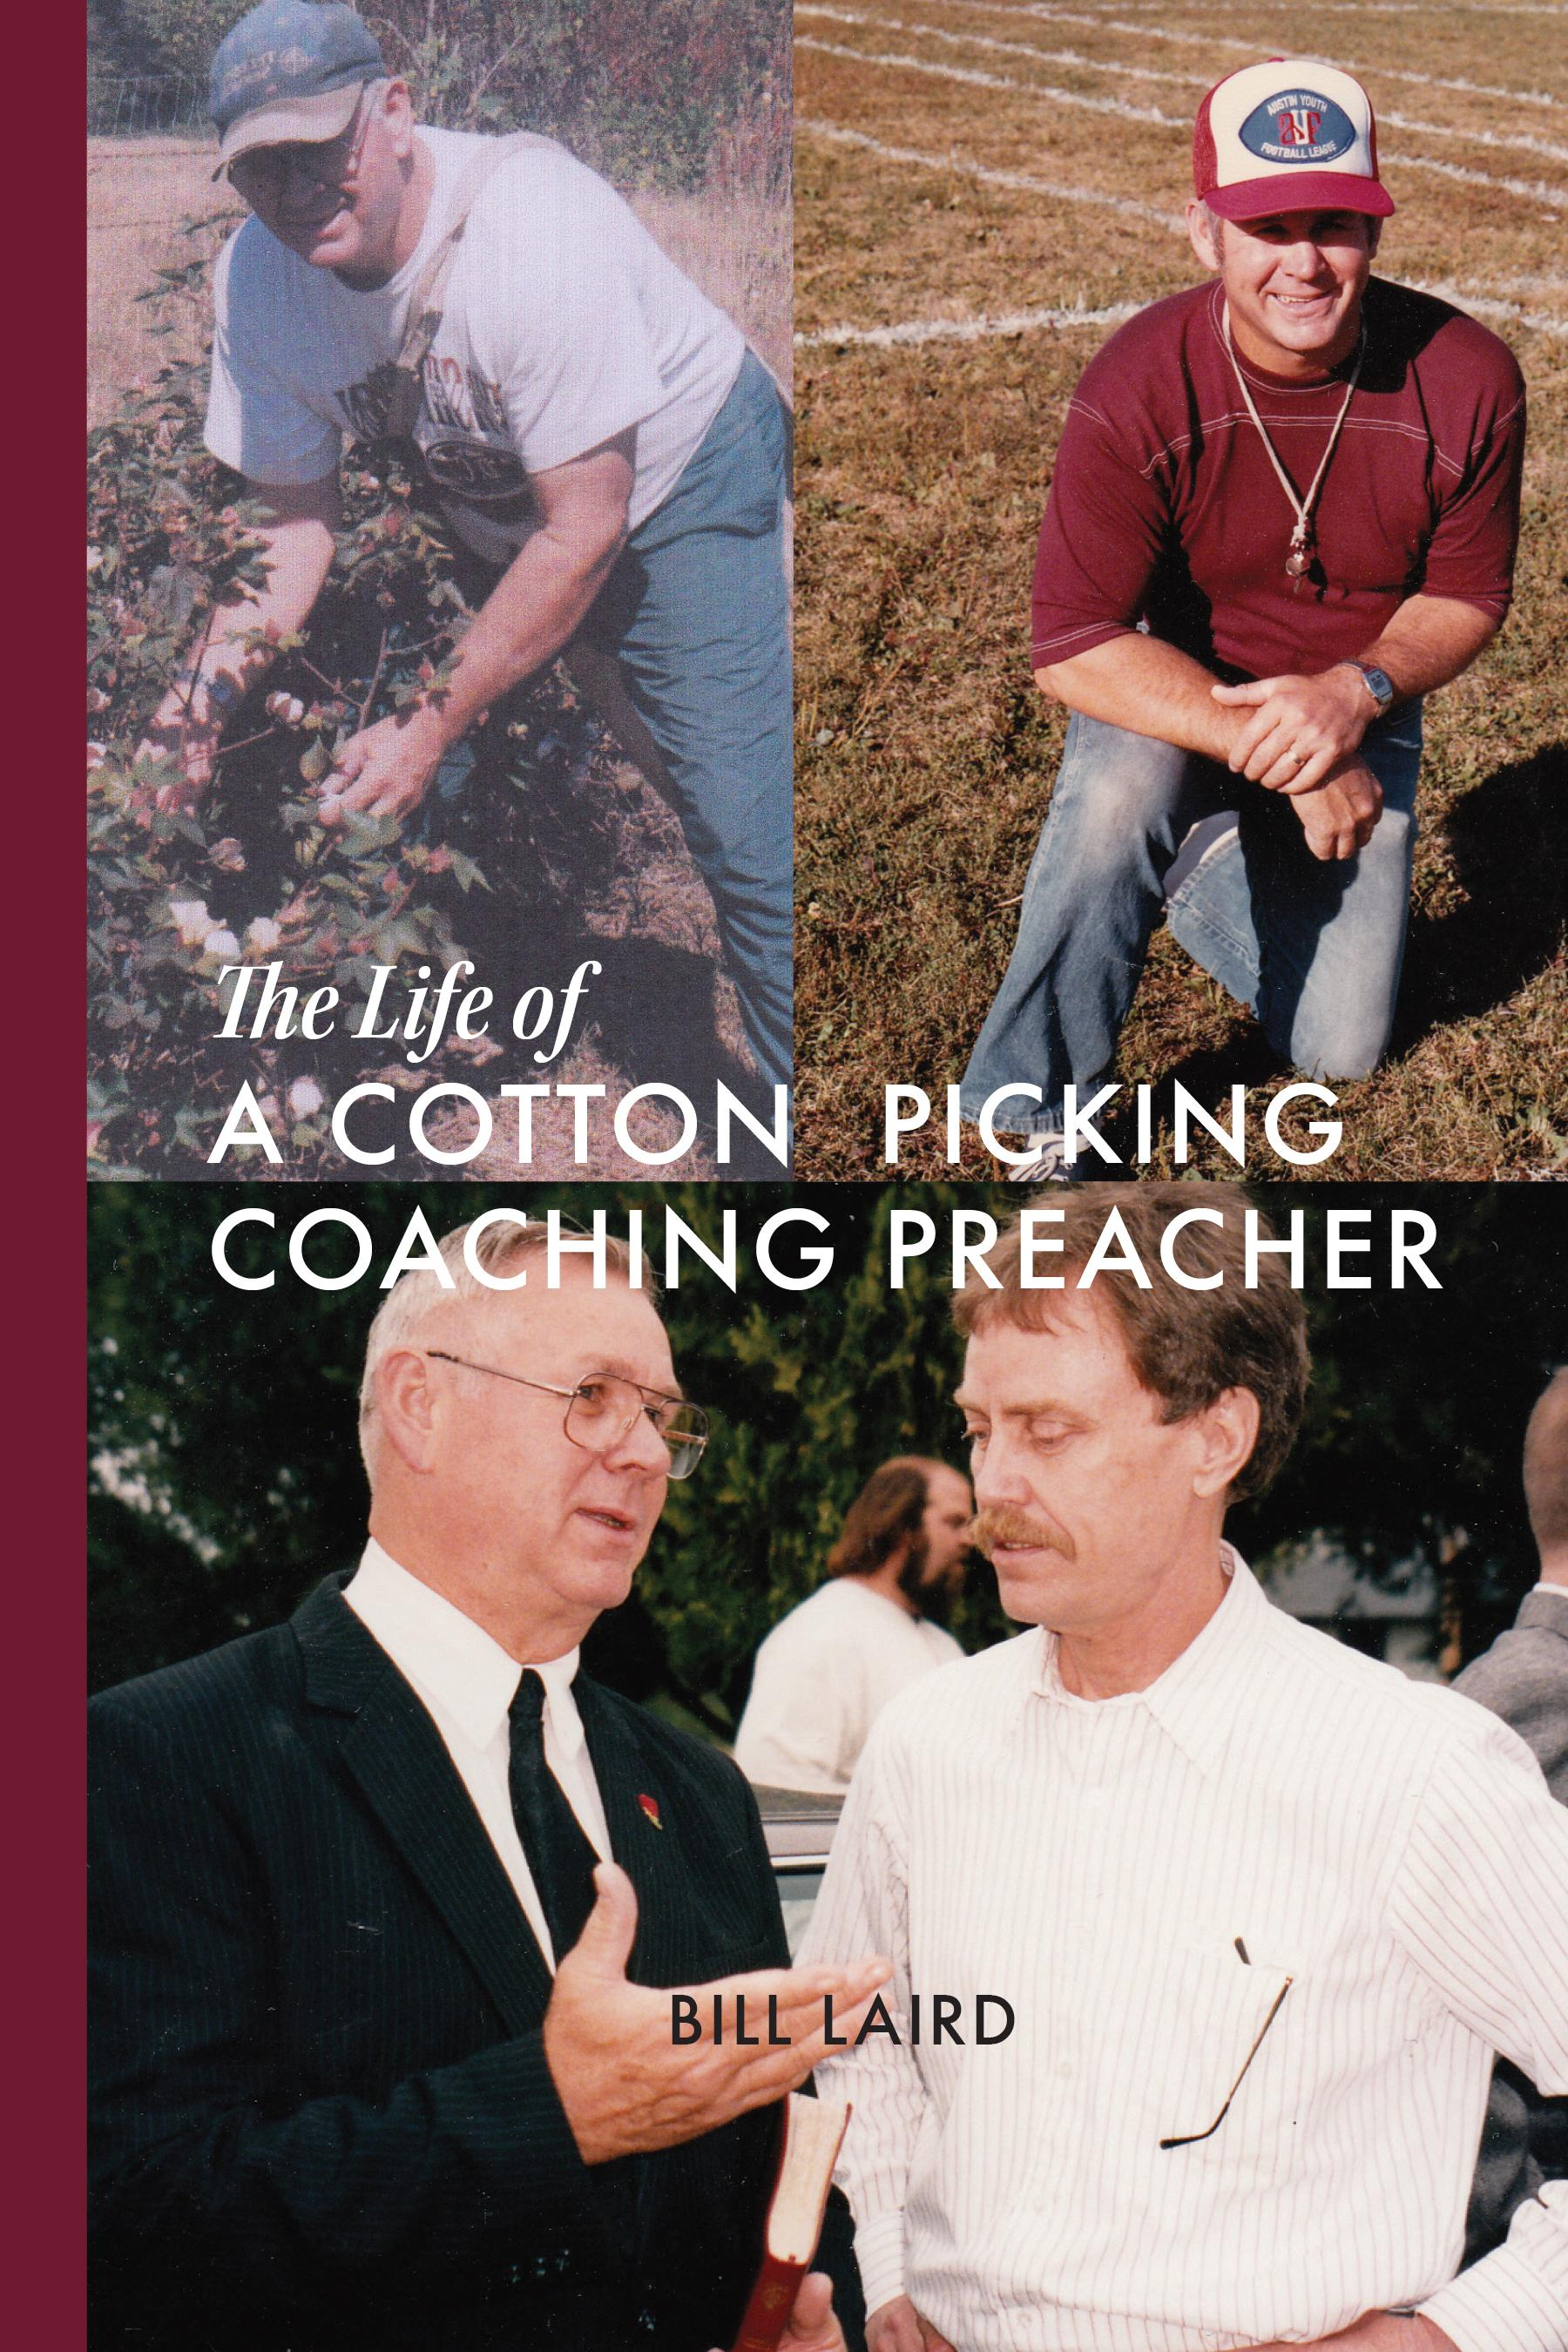 The Life of a Cotton Picking Coaching Preacher